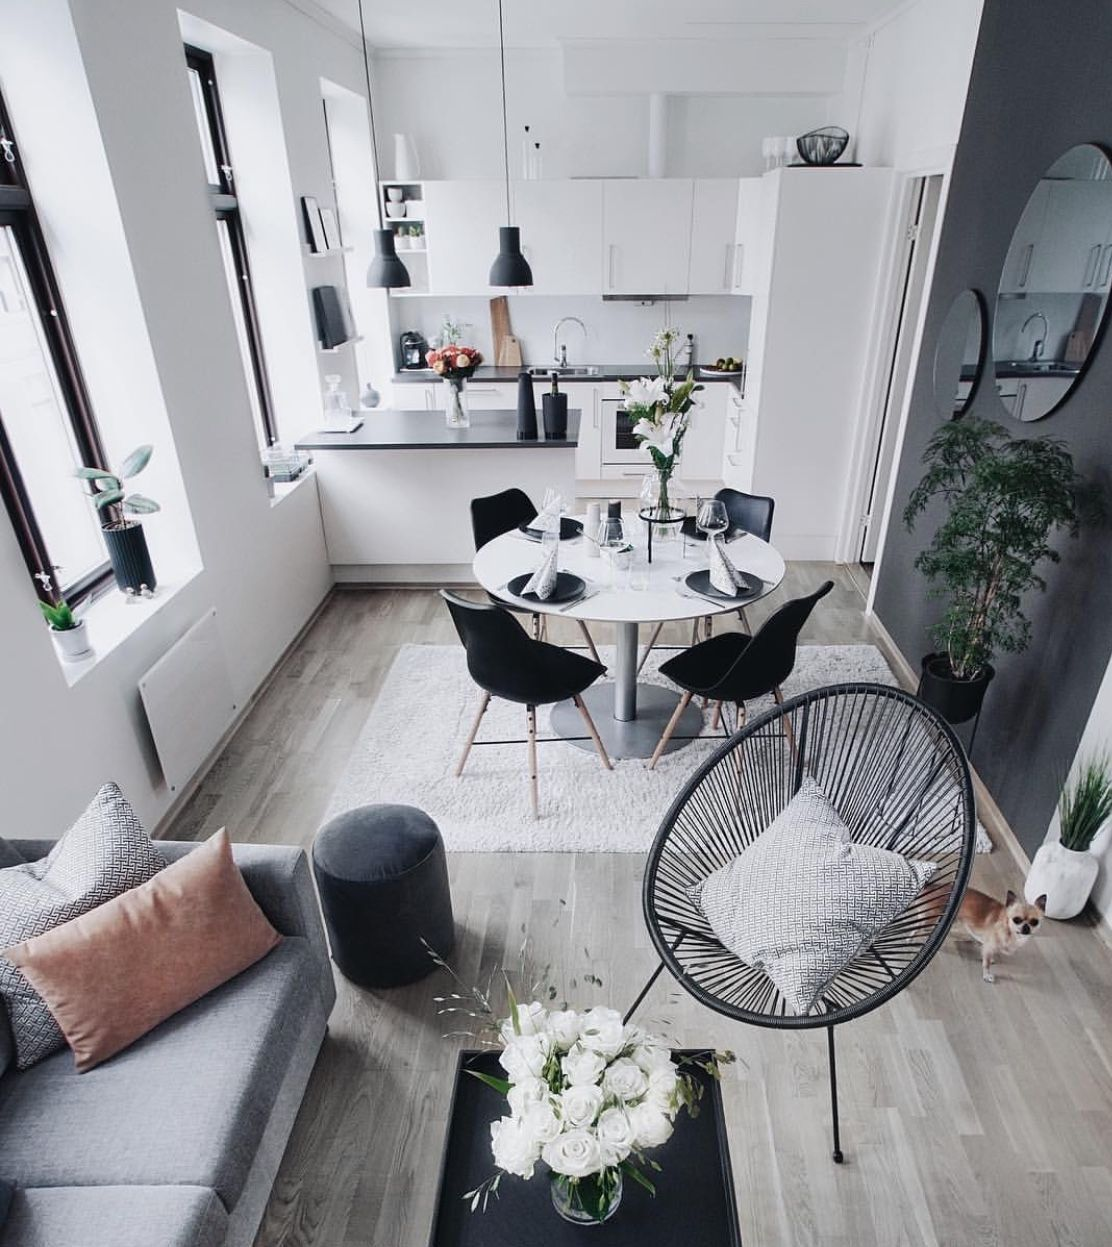 39 Hottest Small Living Room Decor Ideas For Your Apartment To Try